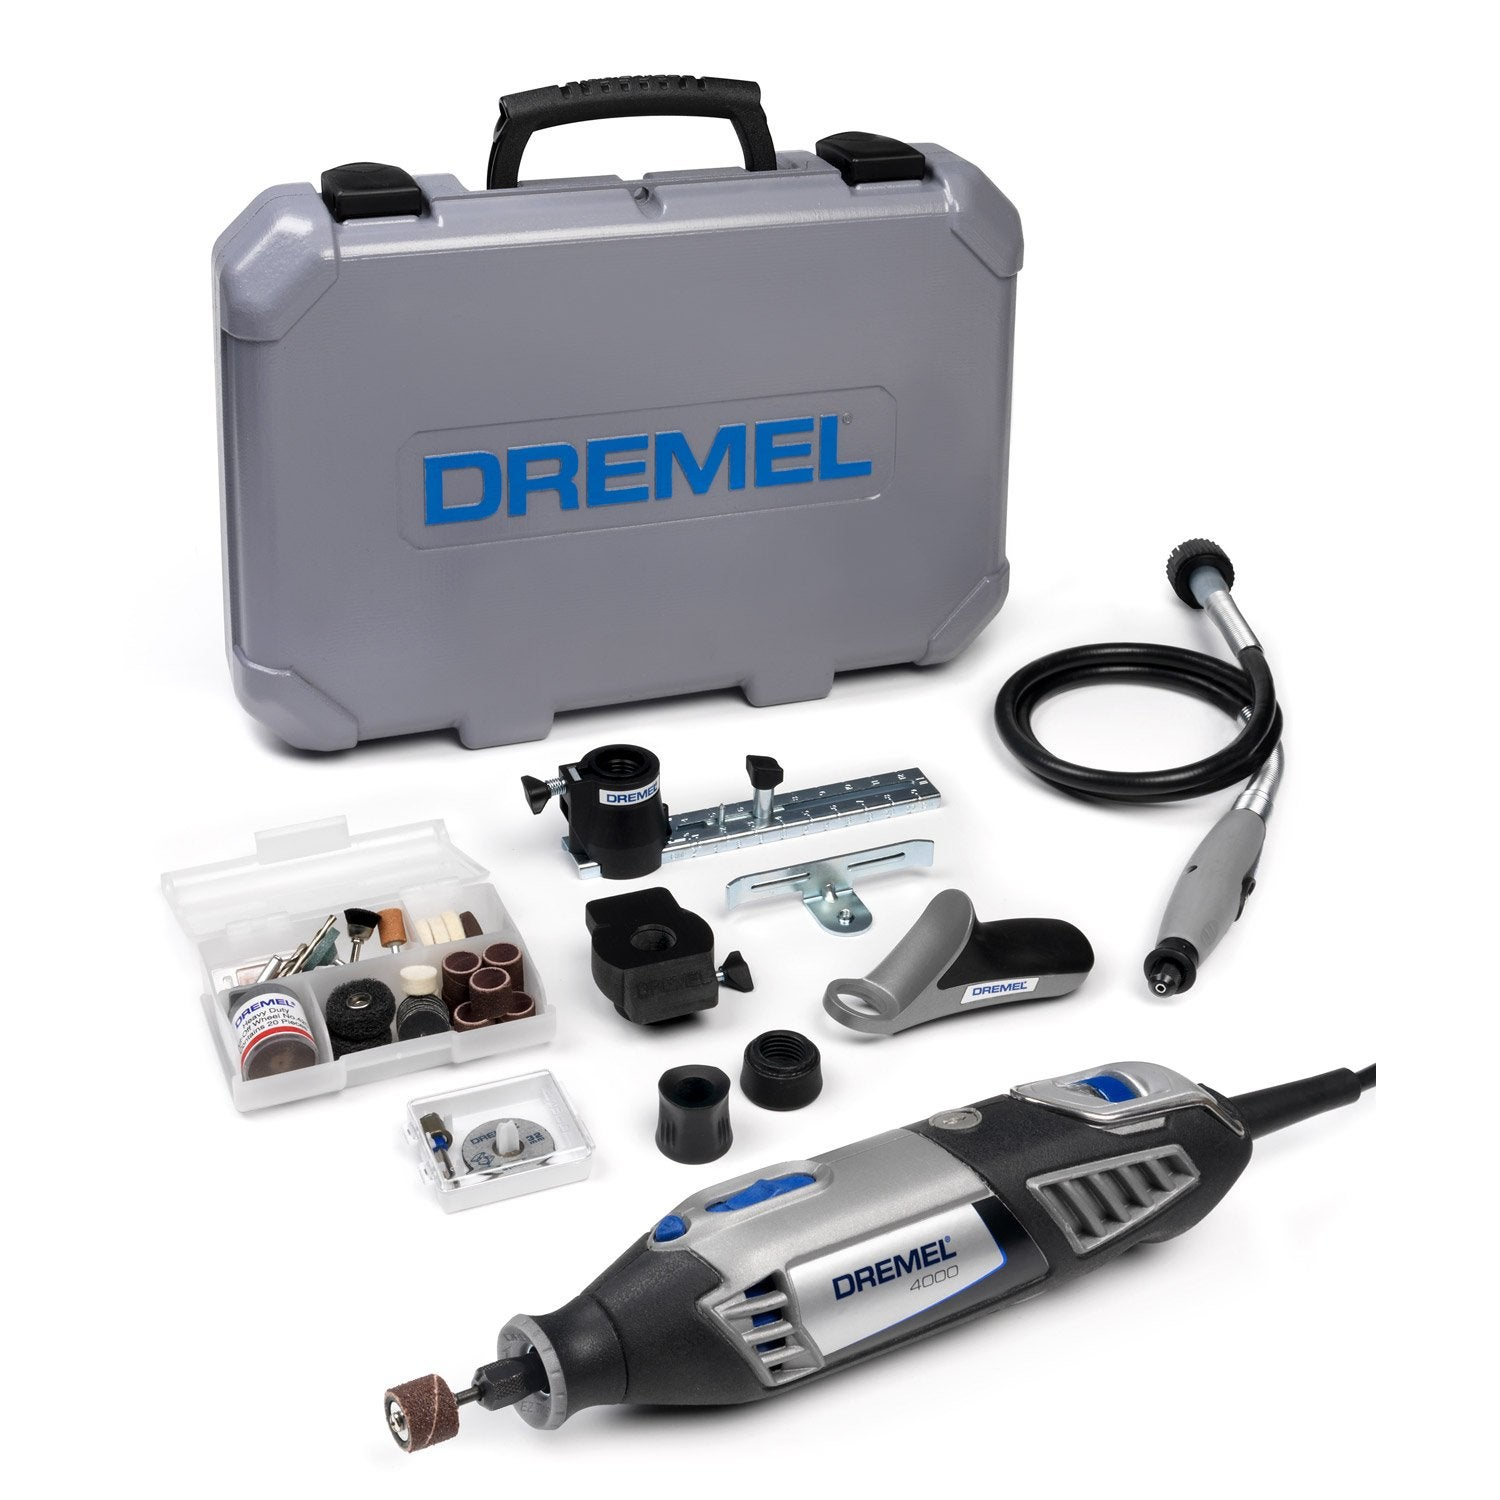 minioutillage dremel 4000 series 175w 65 accessoires leroy merlin. Black Bedroom Furniture Sets. Home Design Ideas